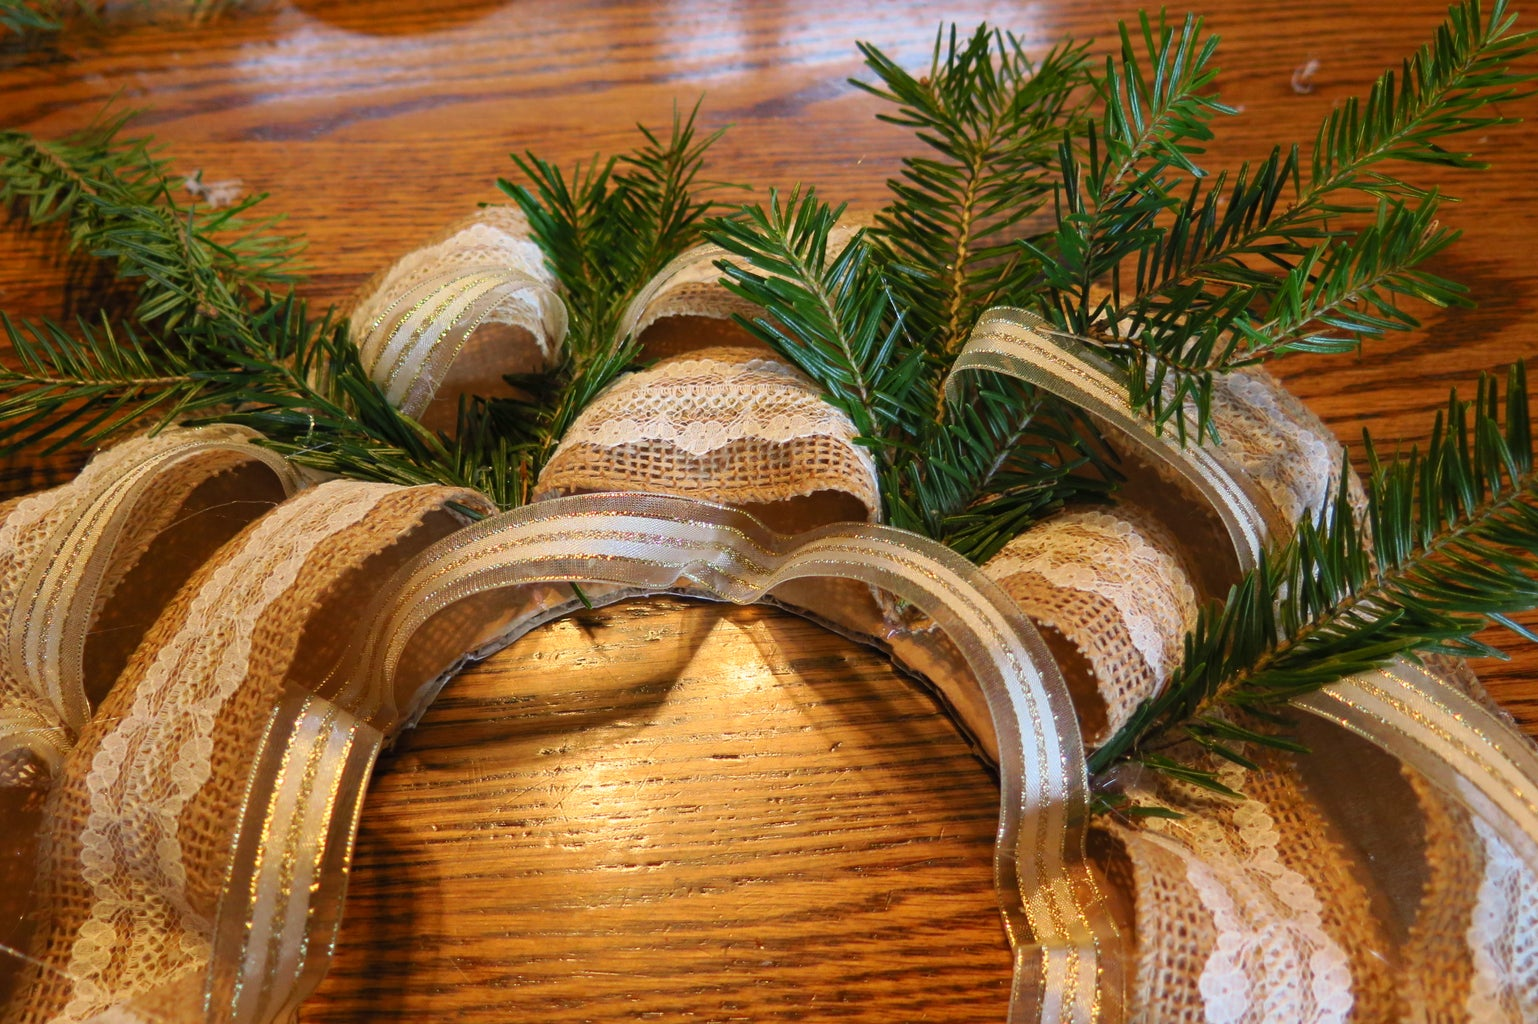 Add the Pine Branches